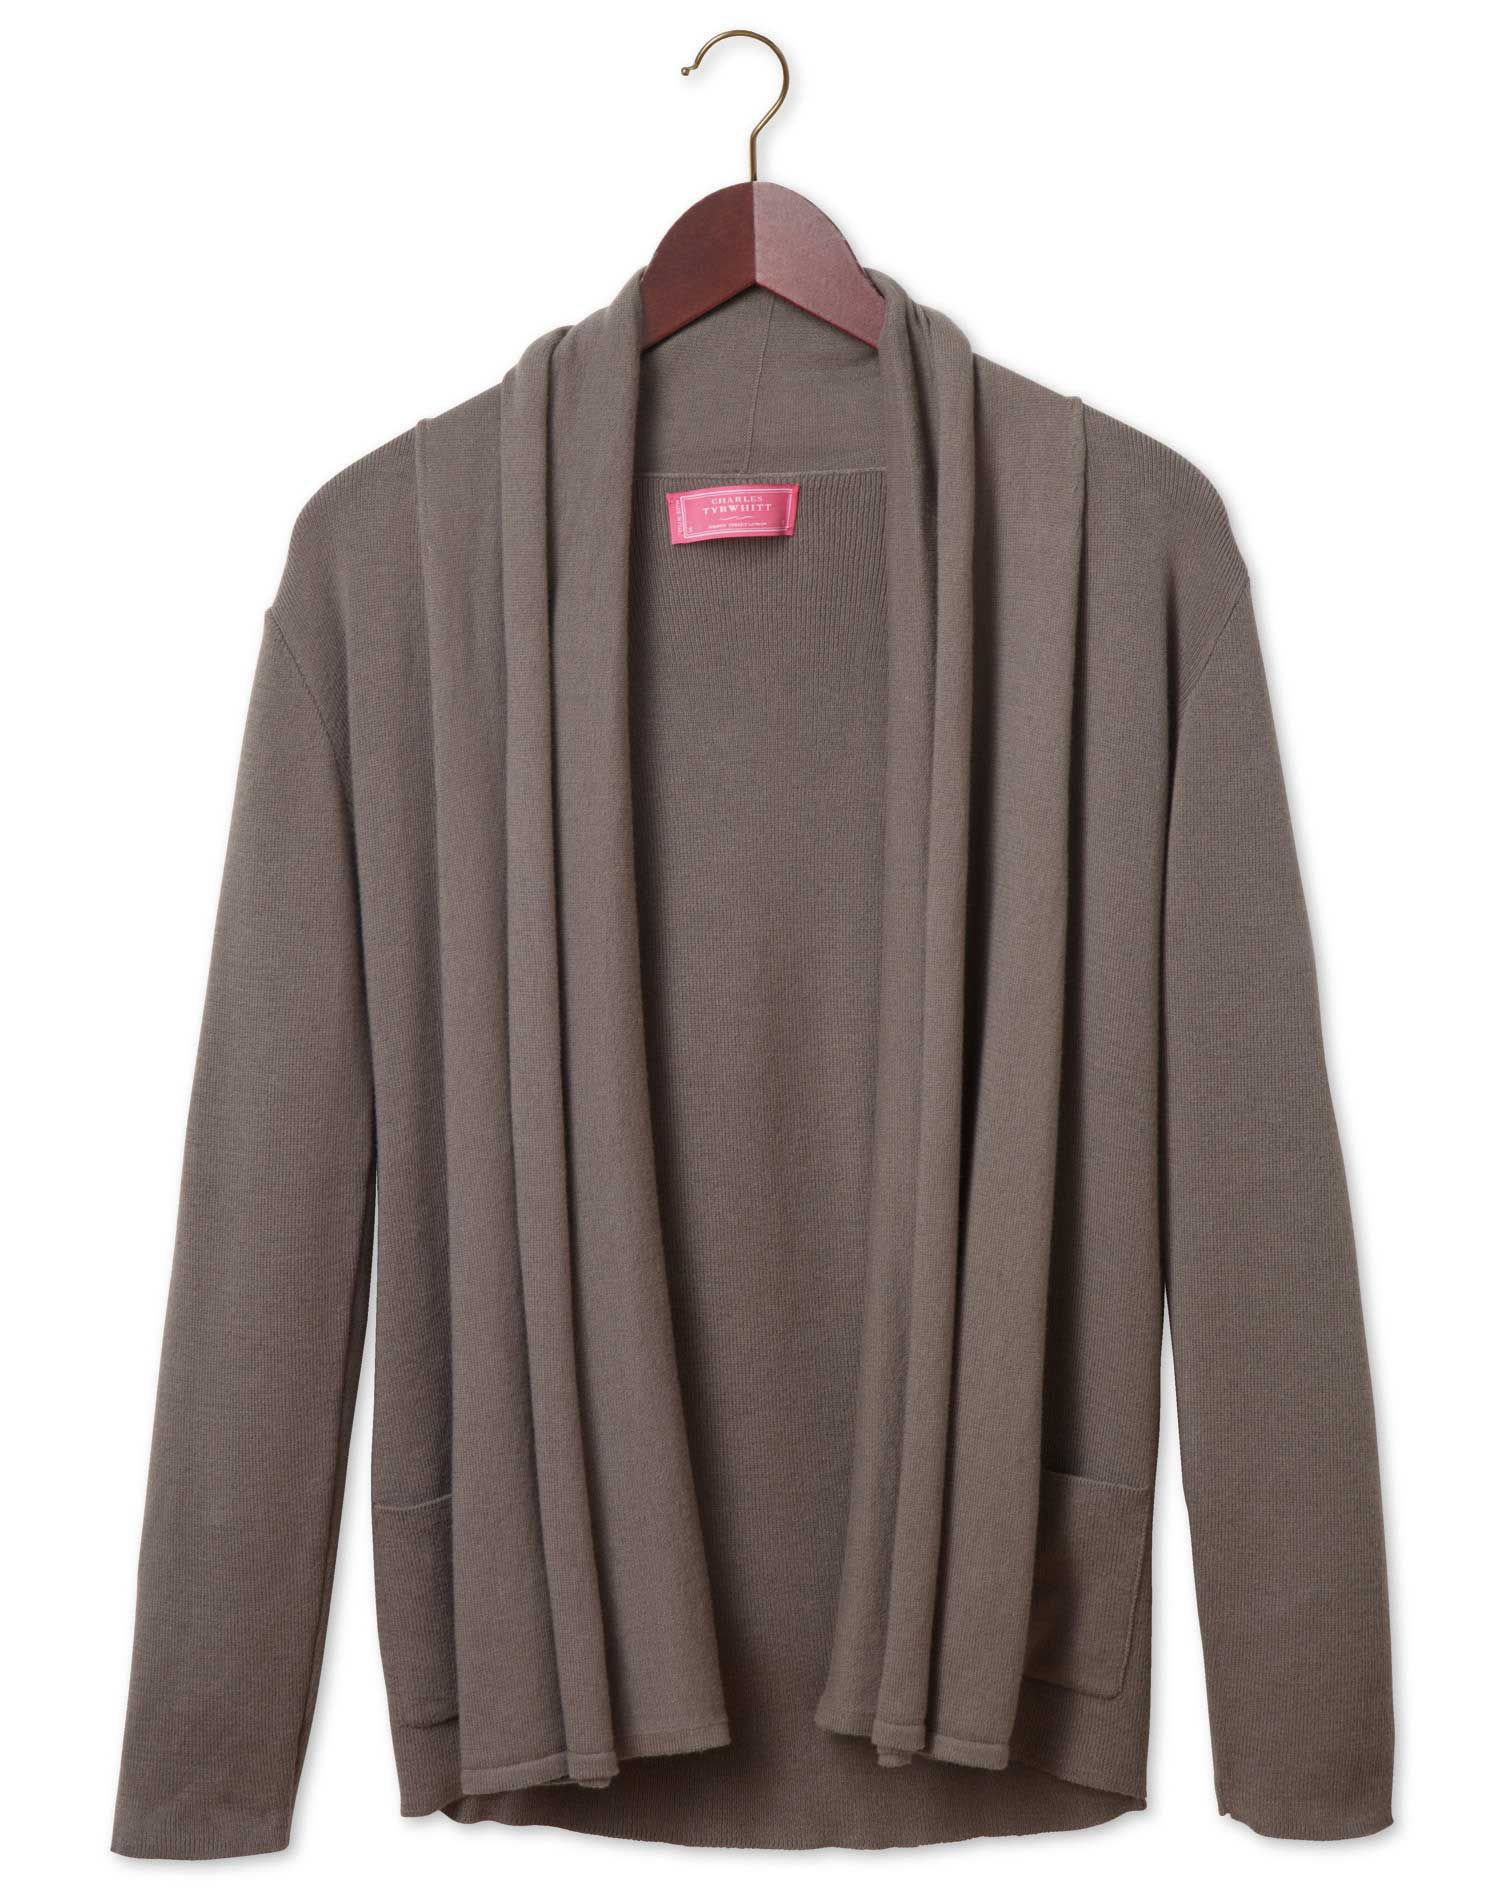 Women's brown cotton cashmere waterfall cardigan | Pullovers ...